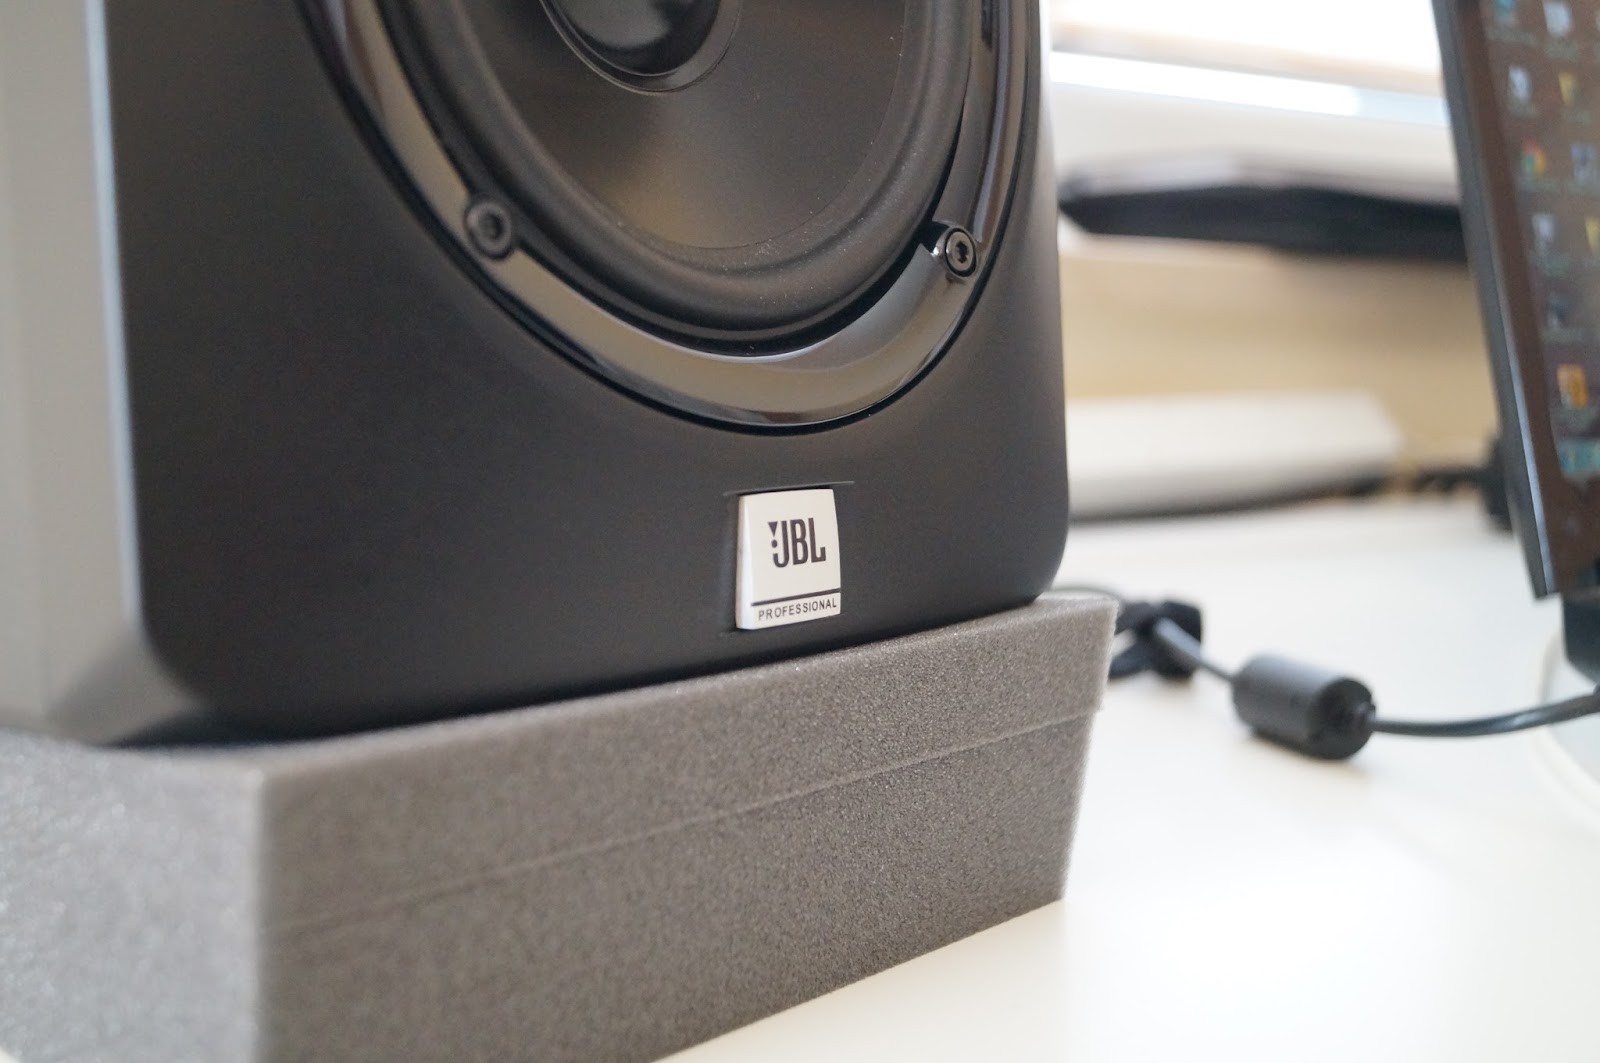 JBL LSR305 Vs KRK Rokit 5 RP5 G3 Comparison